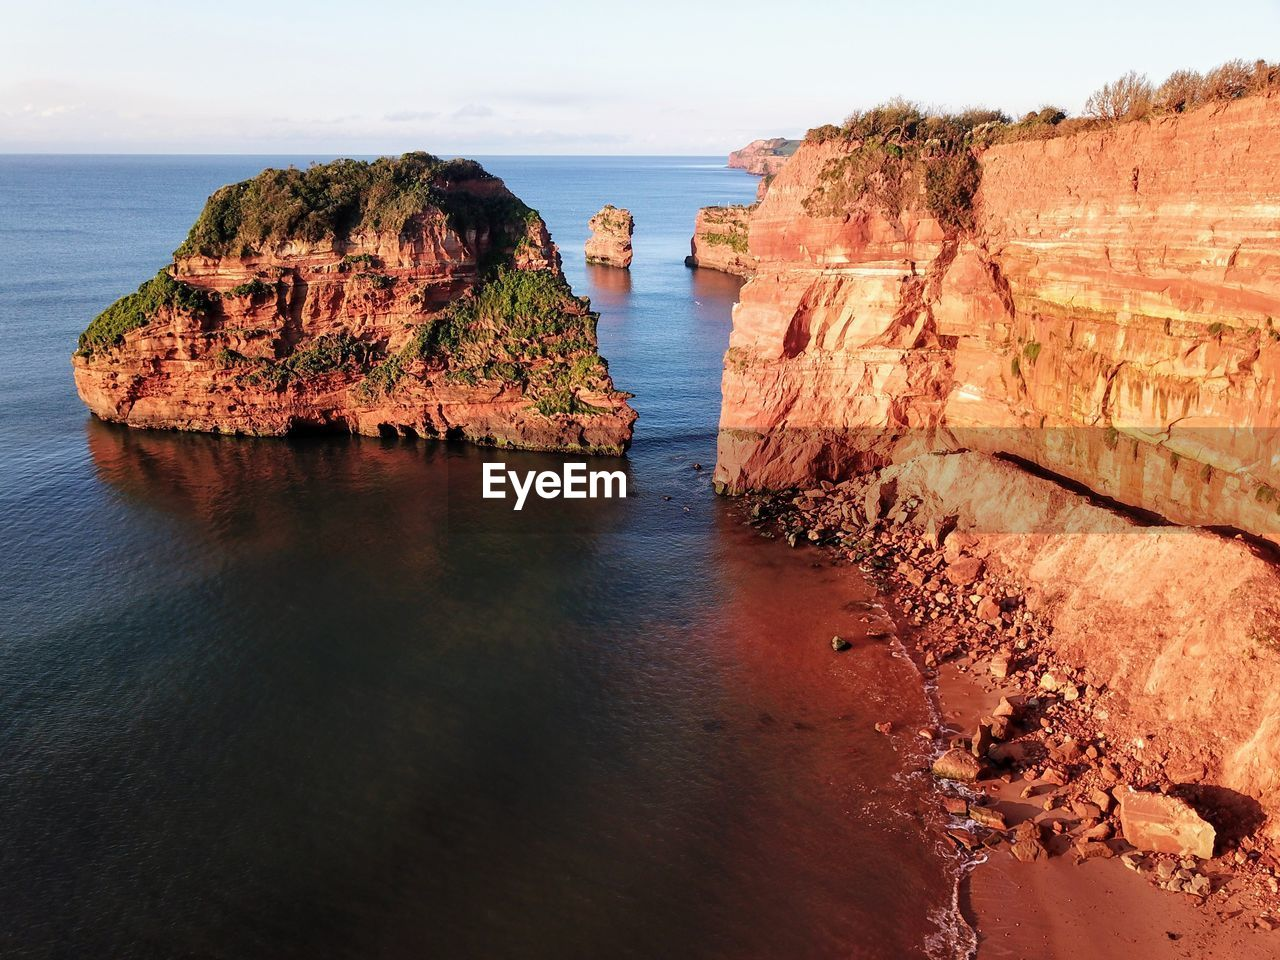 water, sea, rock, rock - object, solid, rock formation, scenics - nature, sky, tranquil scene, beauty in nature, tranquility, horizon over water, nature, cliff, no people, land, idyllic, horizon, day, stack rock, outdoors, eroded, formation